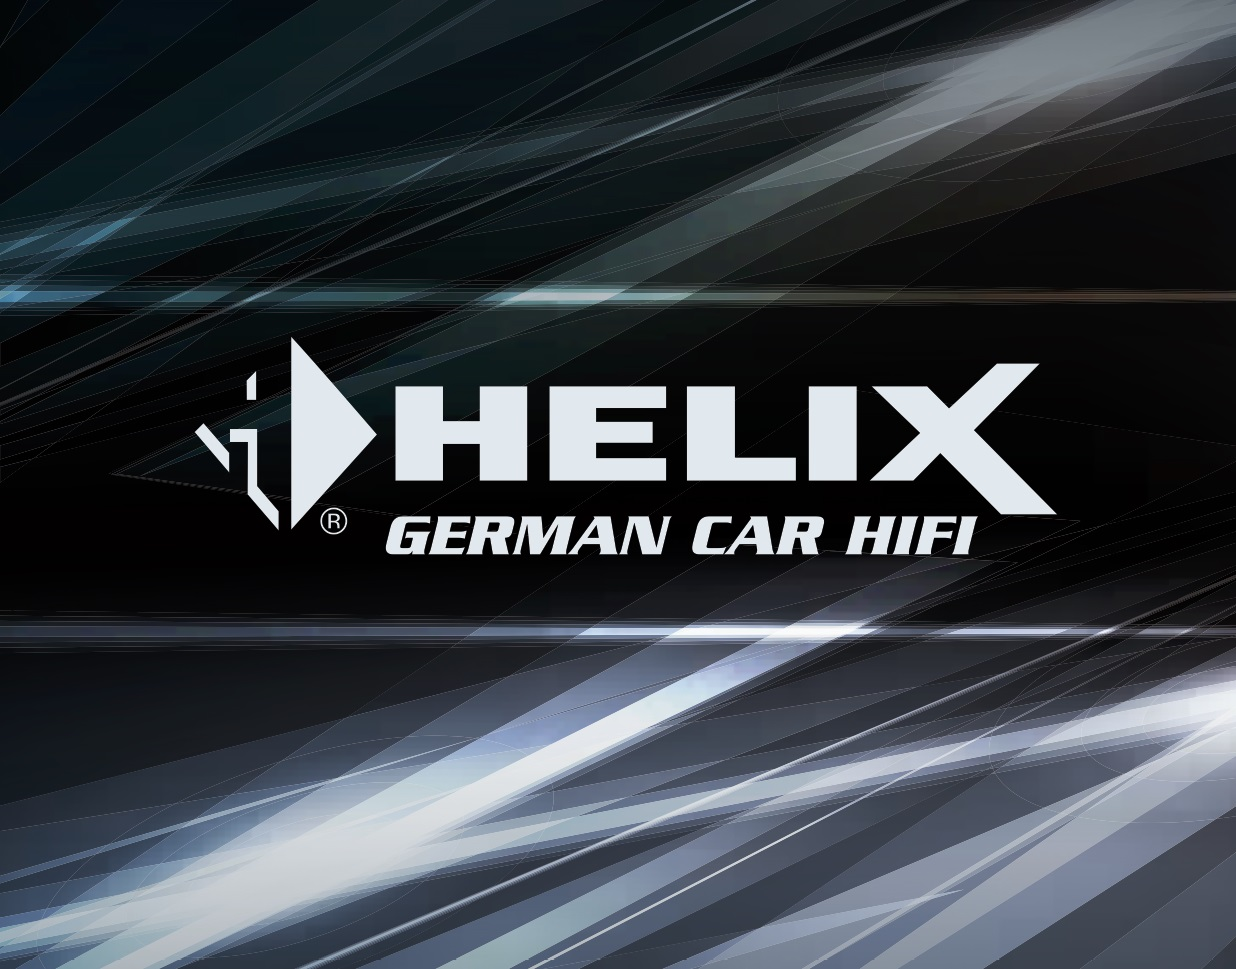 Helix Sound Upgrade Stealth Gti. Helix Is A German Highfidelity Audio System Maker That Based The Volkswagen Accessory On Their Existing Pp62dsp New Vw Pn 000051419b. Audi. Helix Car Audio Diagram At Scoala.co